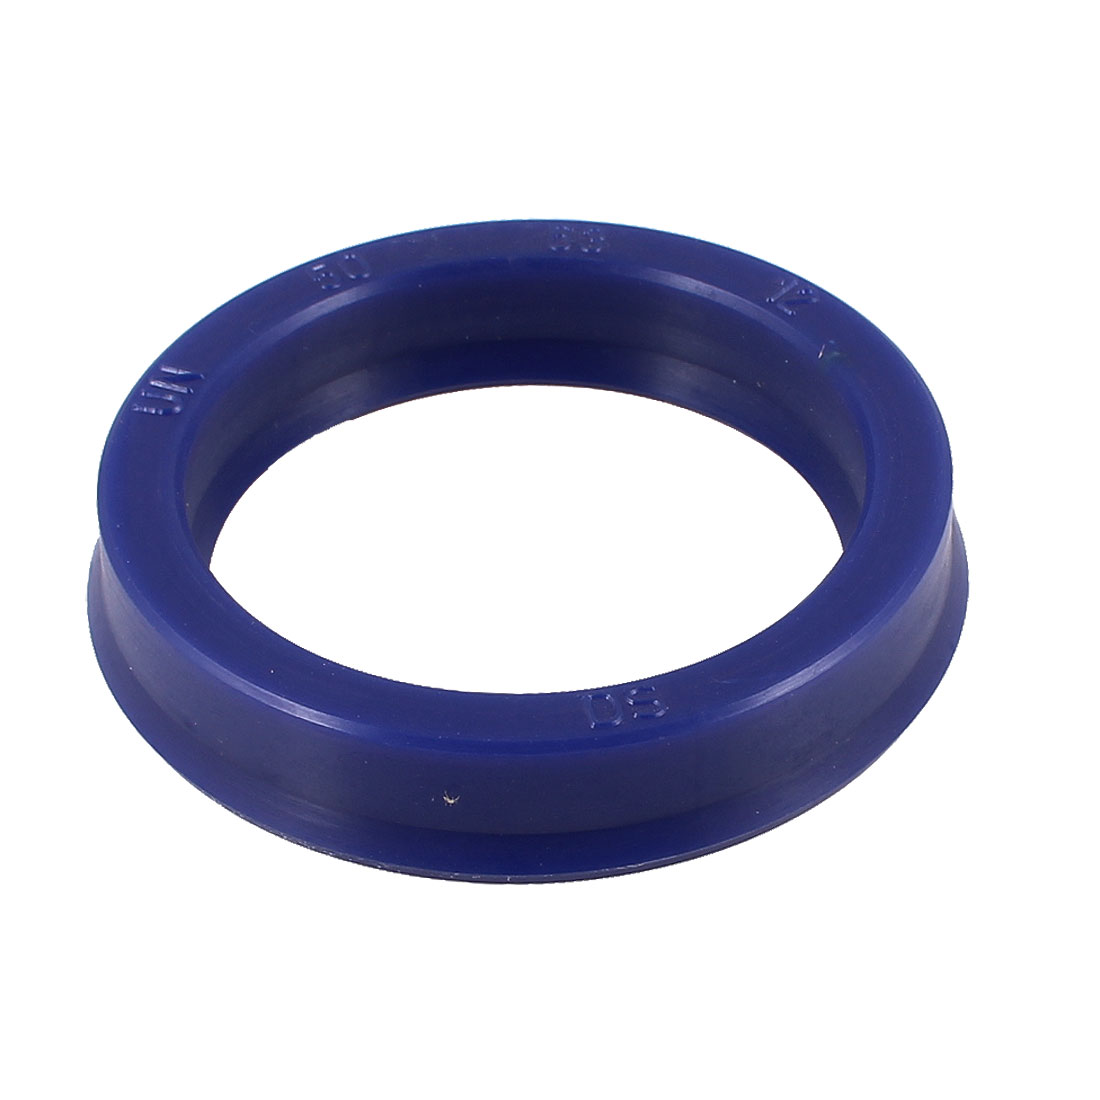 Blue PU 50mm x 63mm x 12mm Double Lip Sealing Cushion Dust Seal Ring